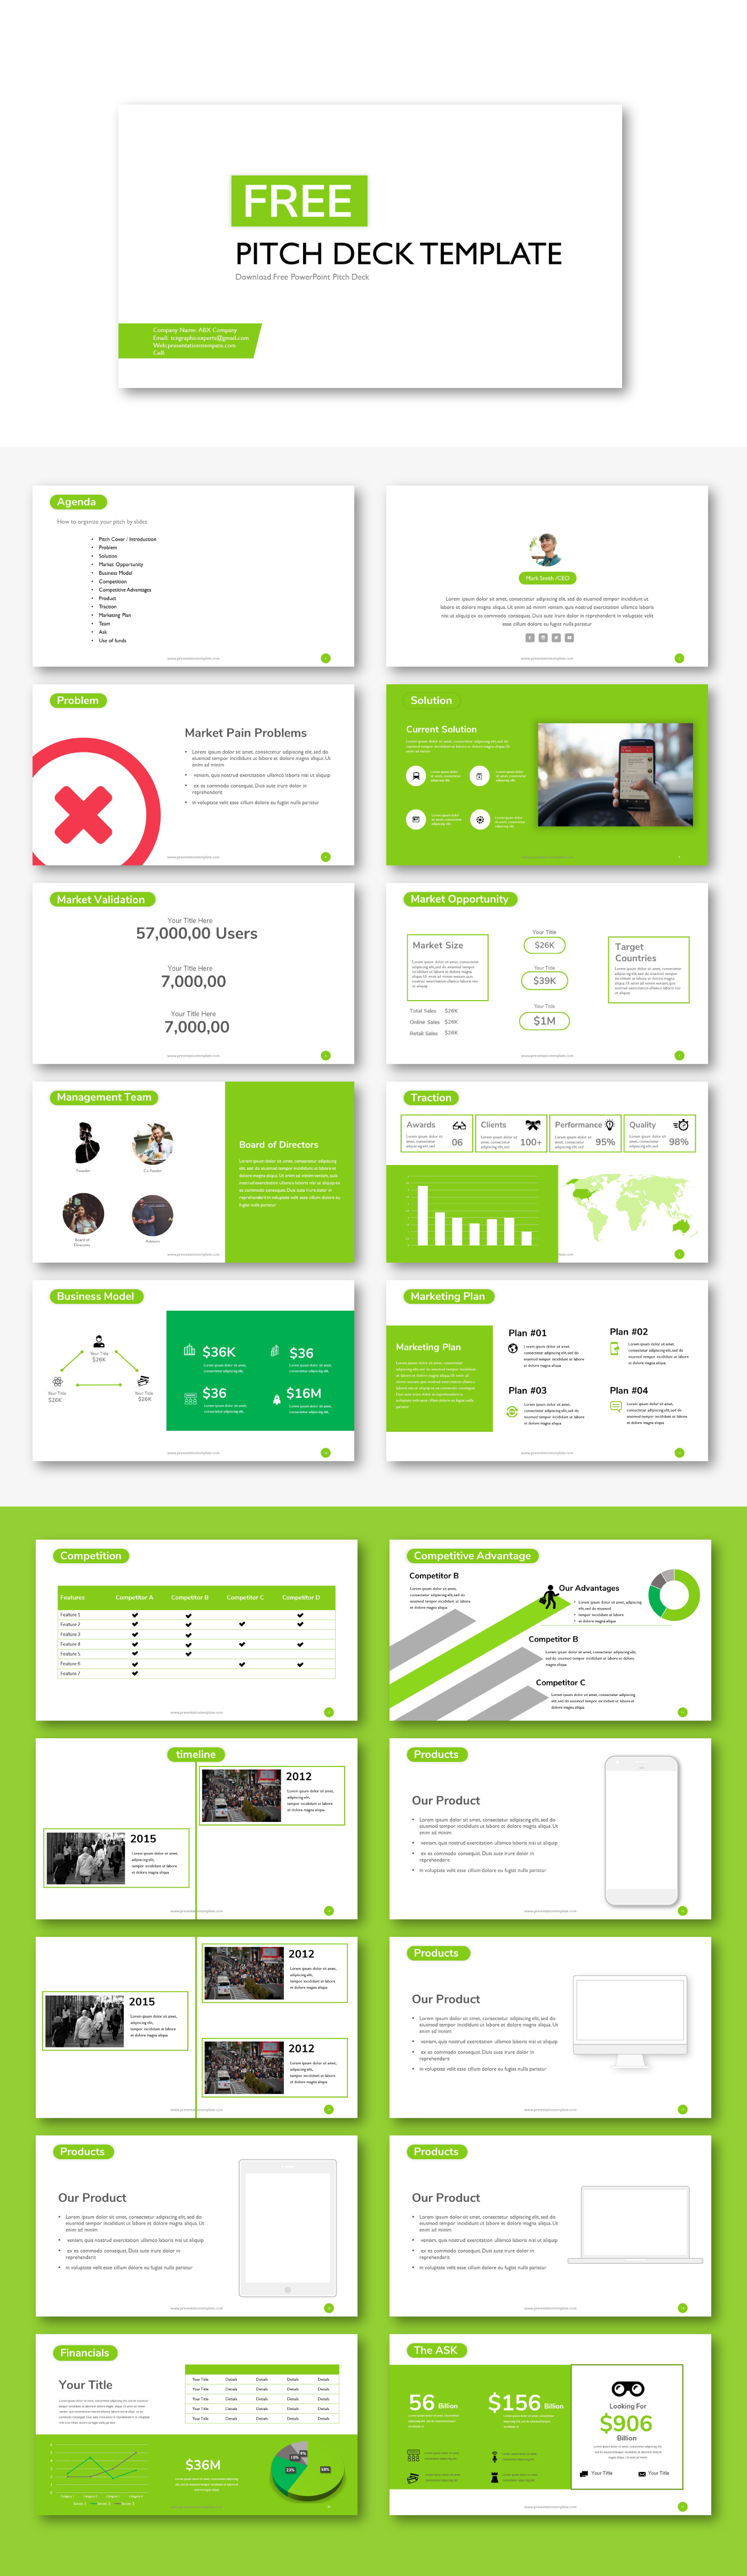 Free pitch deck powerpoint template free pitch deck powerpoint free pitch deck powerpoint template toneelgroepblik Image collections